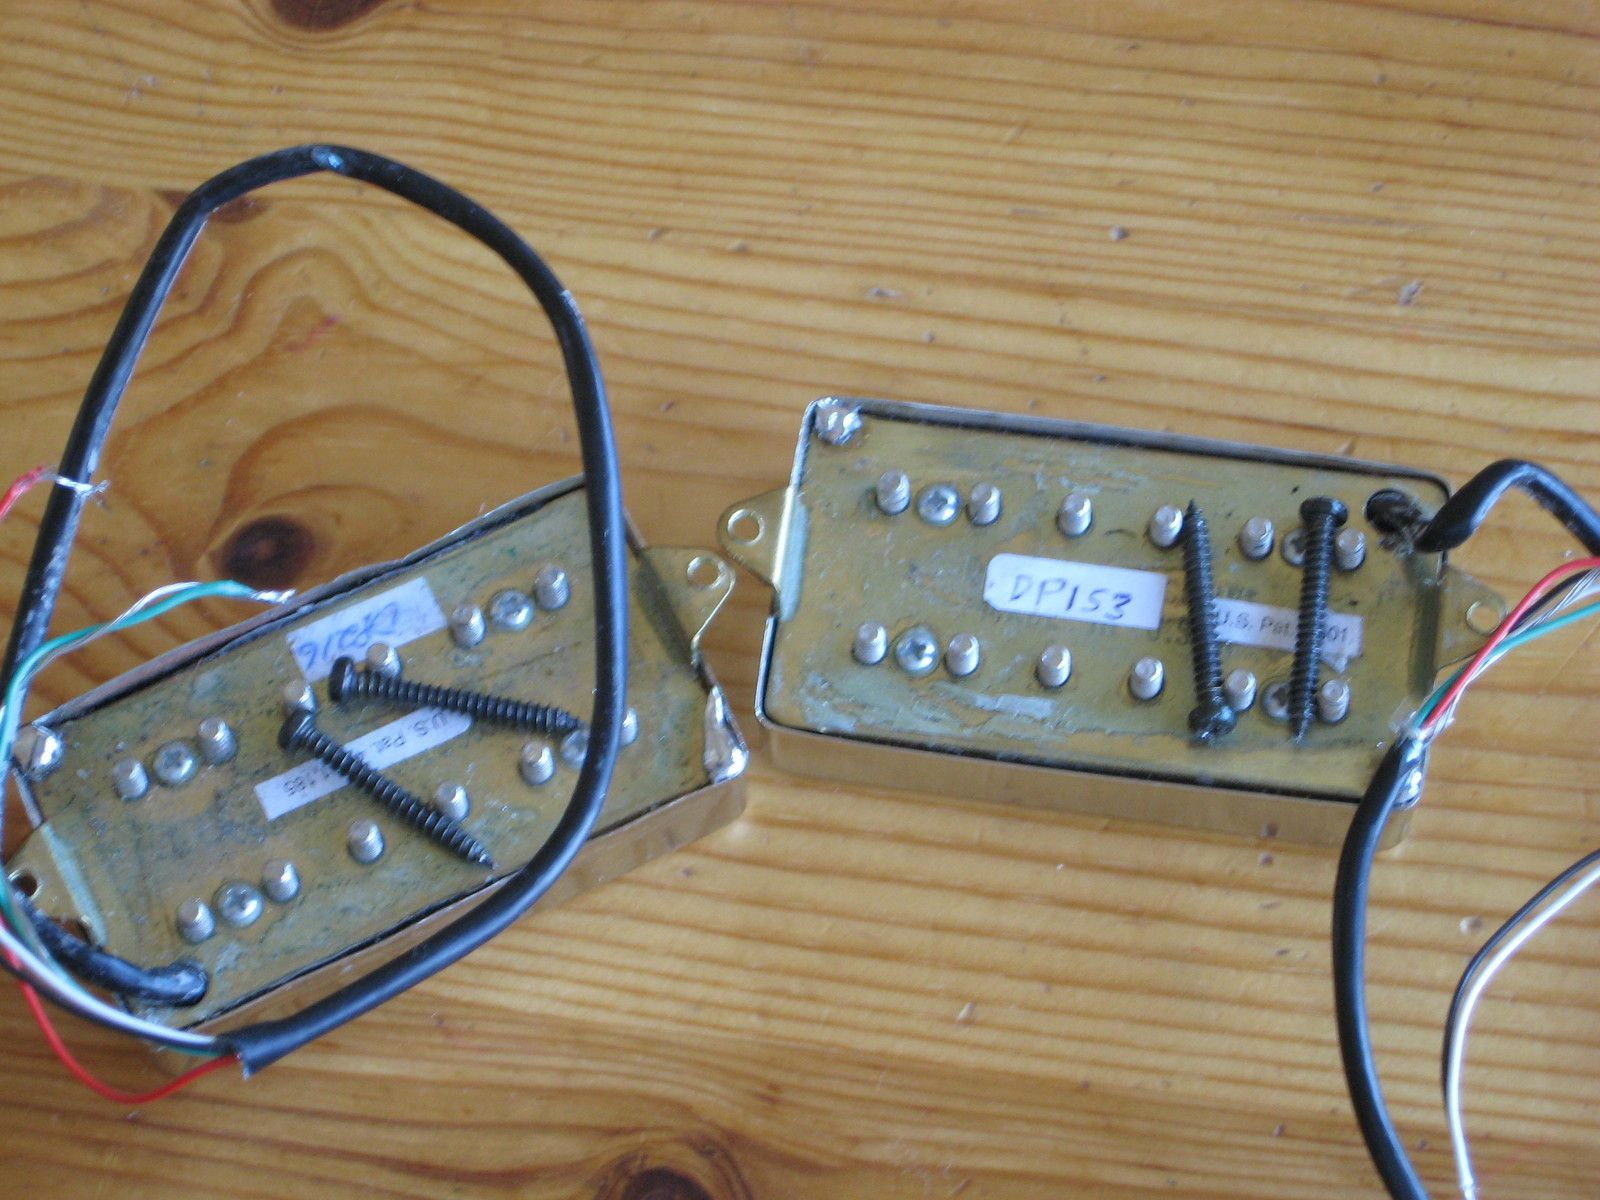 Awesome Two Humbuckers 5 Way Switch Huge Hh 5 Way Switch Wiring Shaped Gretsch Wiring Harness Solar Panel Diagram Young Solar Panel Wiring Guide BlackSolar Panel Diagrams DiMarzio DP153 Fred Image (#210753)   Audiofanzine